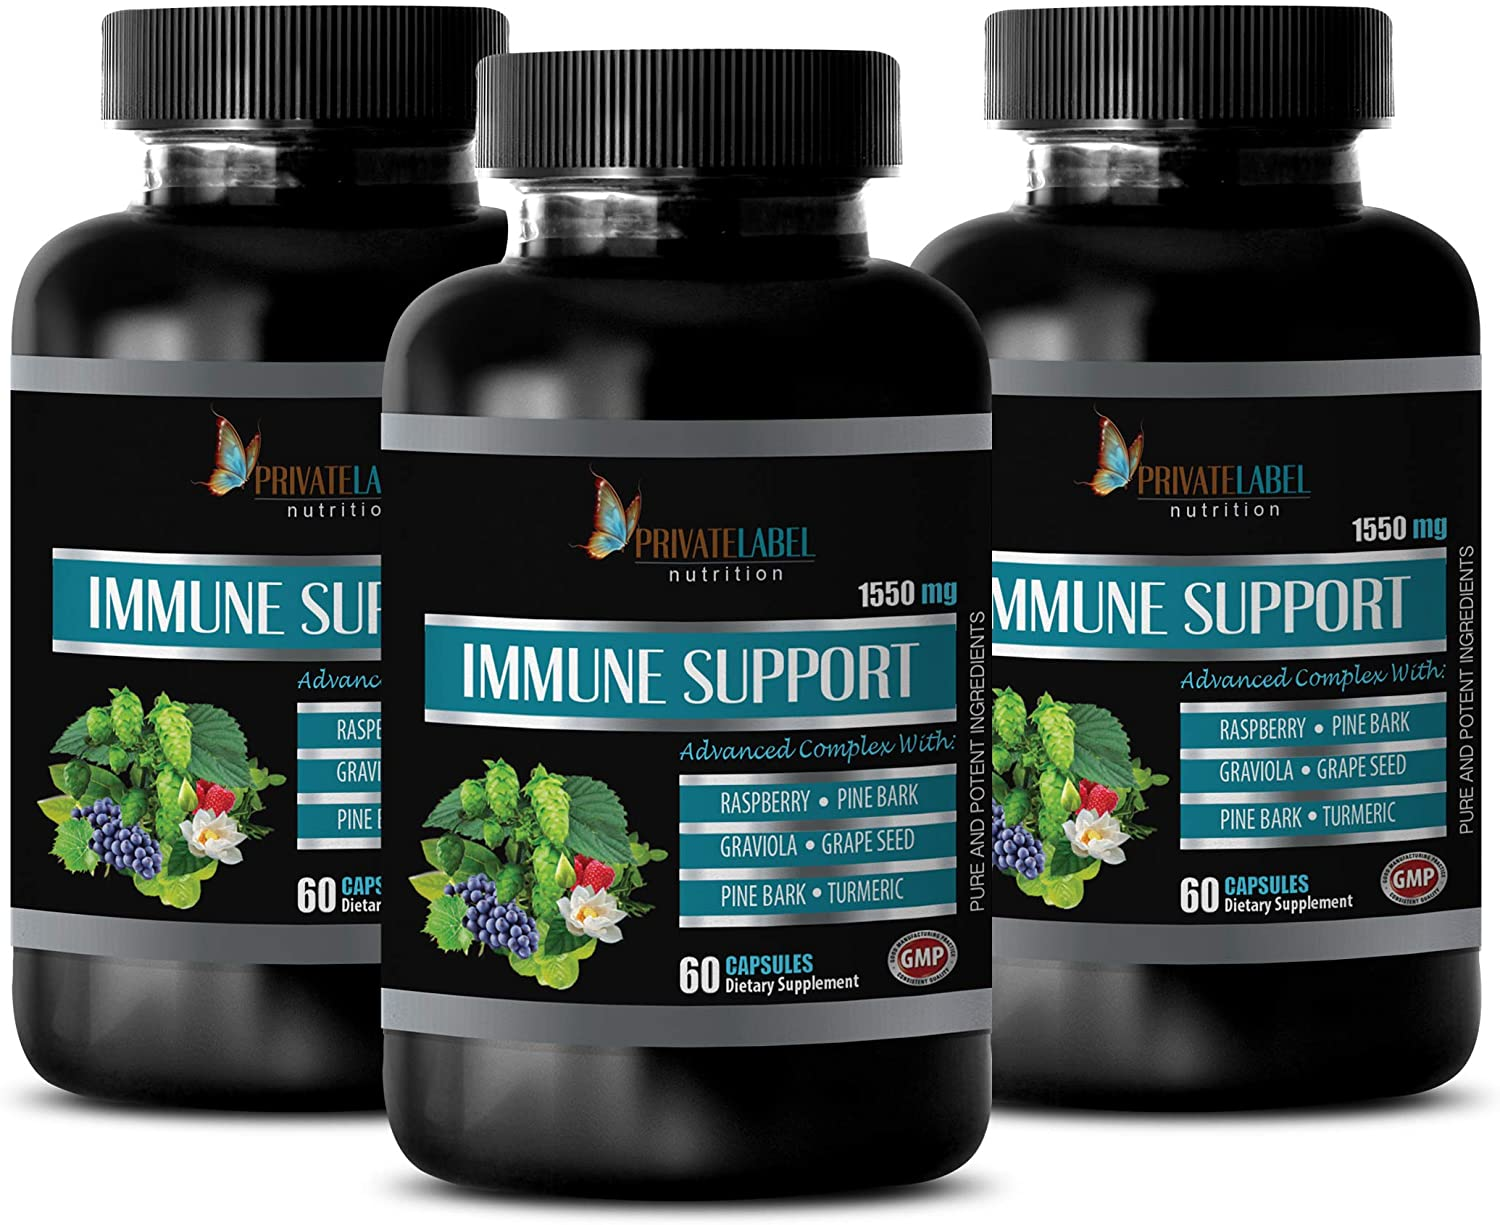 Anti Inflammation Supplements - Immune Support Advanced Complex 1550MG - Turmeric Capsules Free Shipping - 3 Bottles 180 Capsules